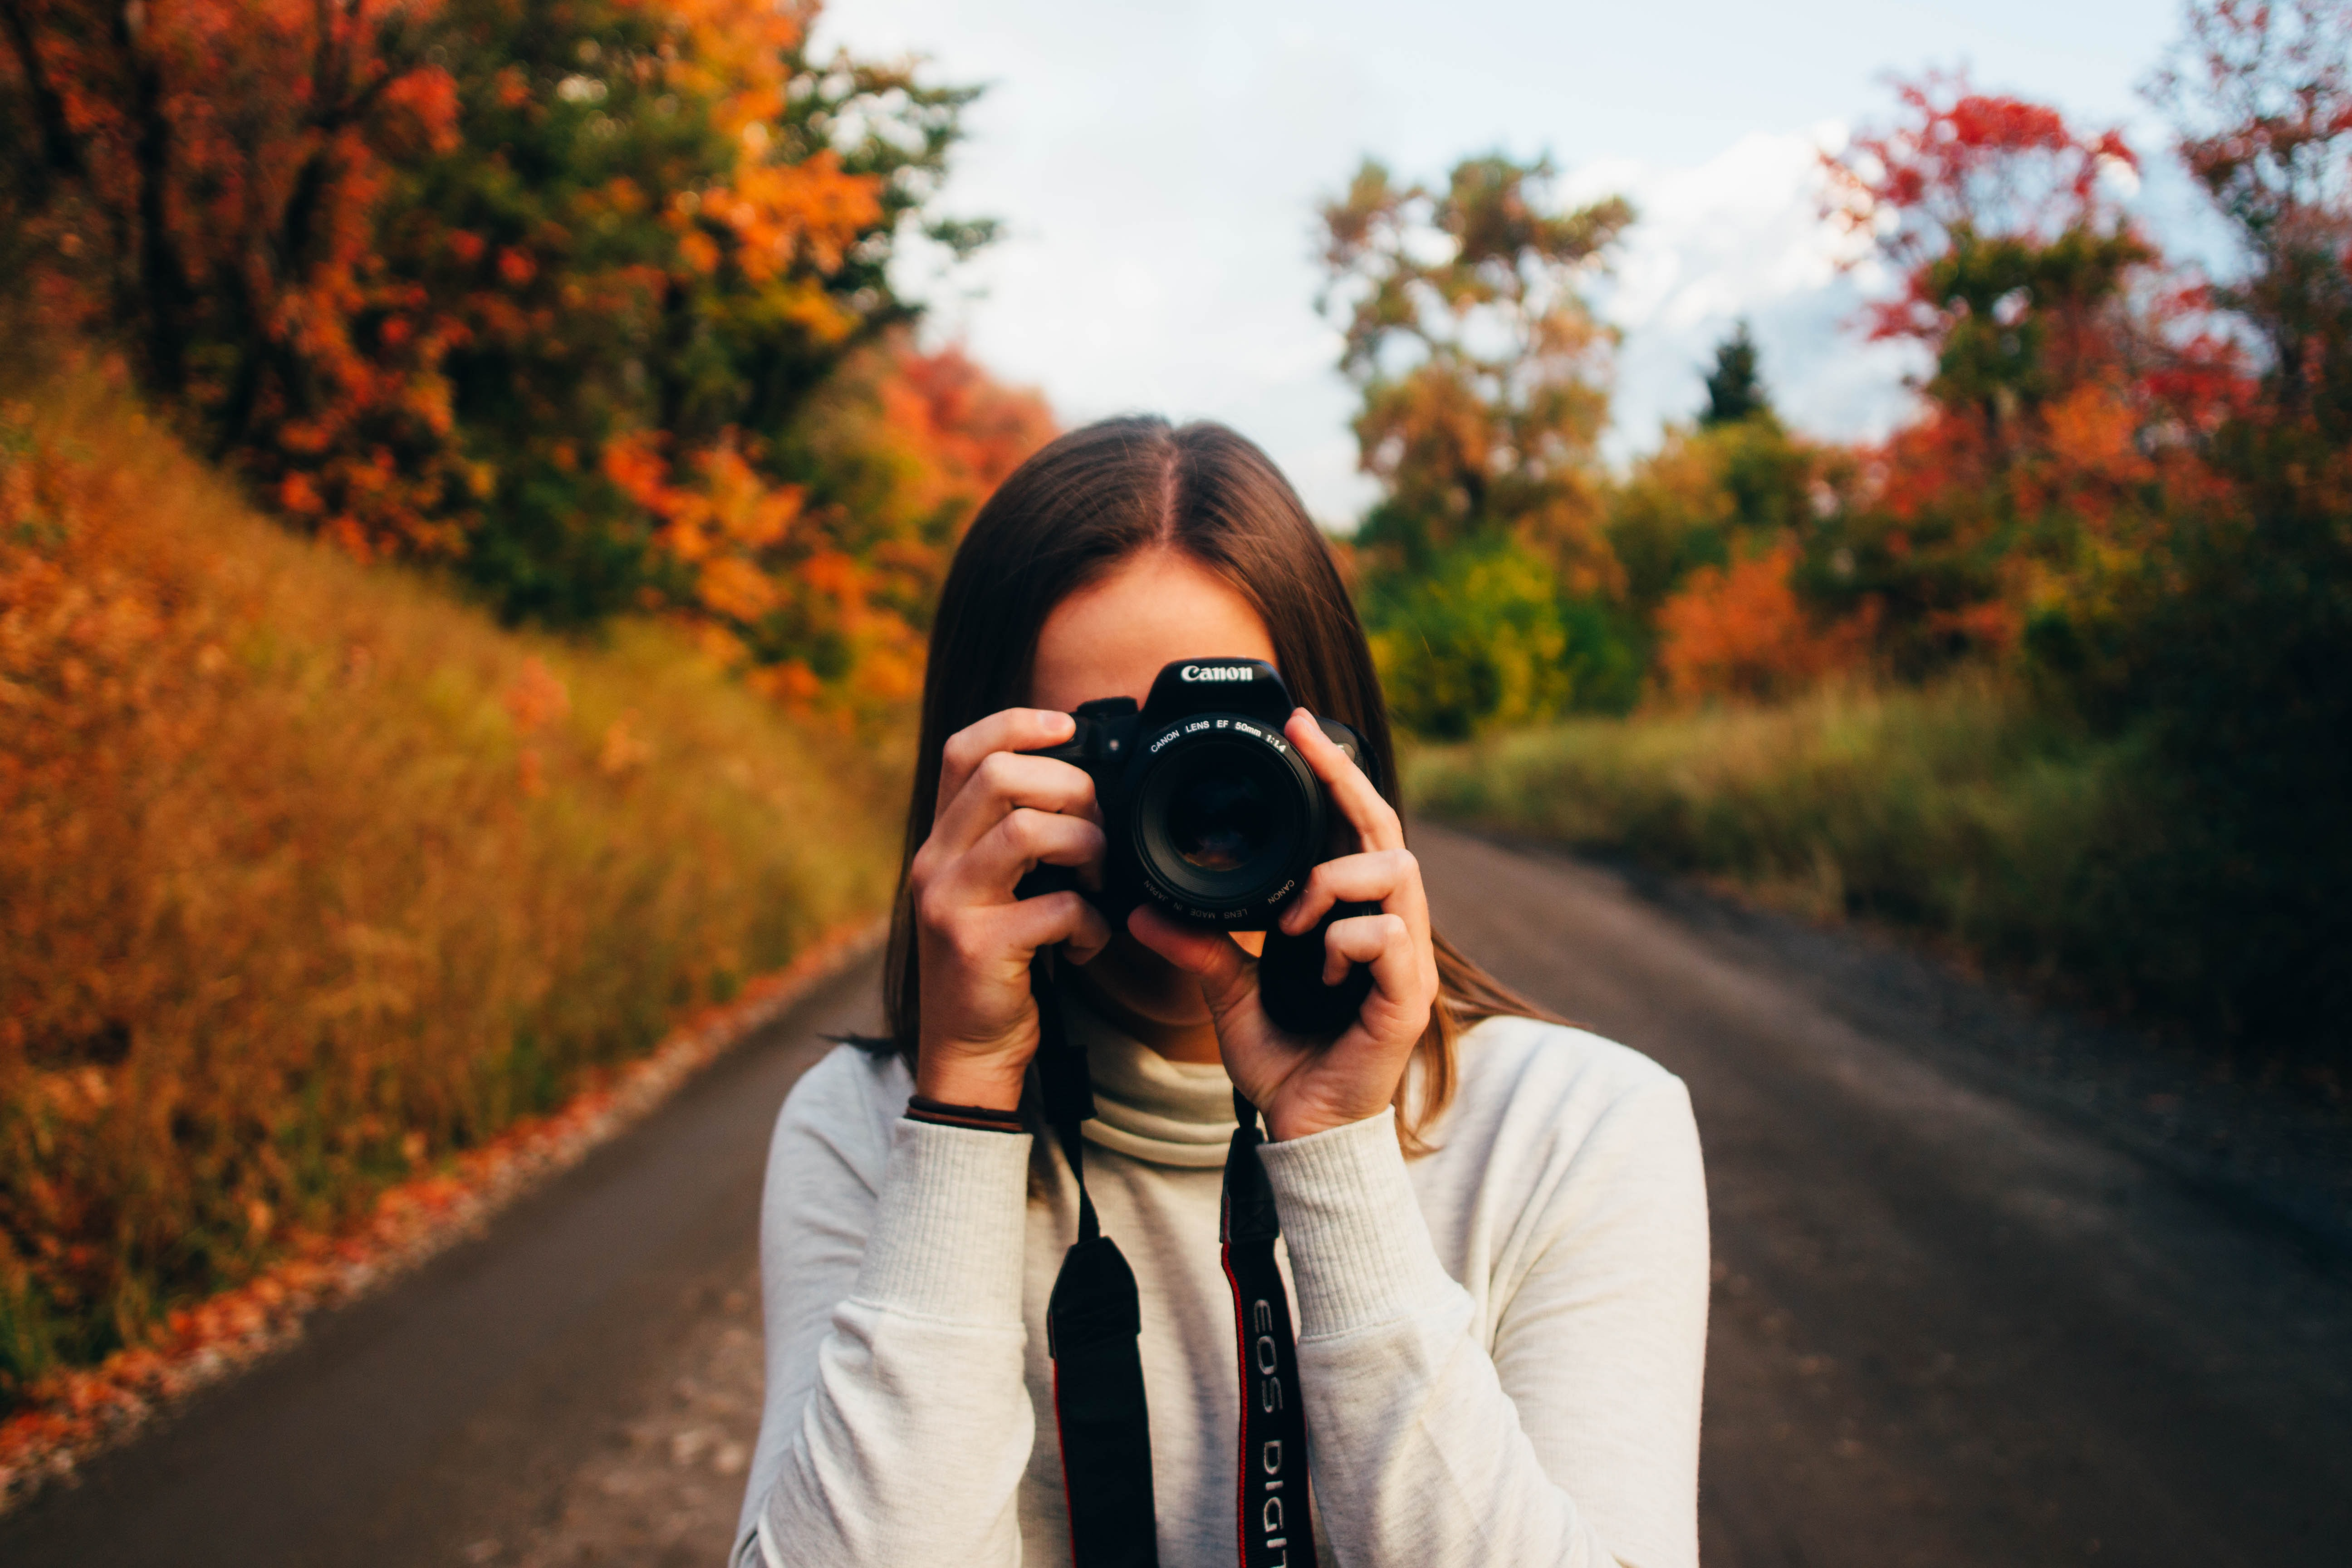 A woman holding a Canon camera with fall foliage behind her